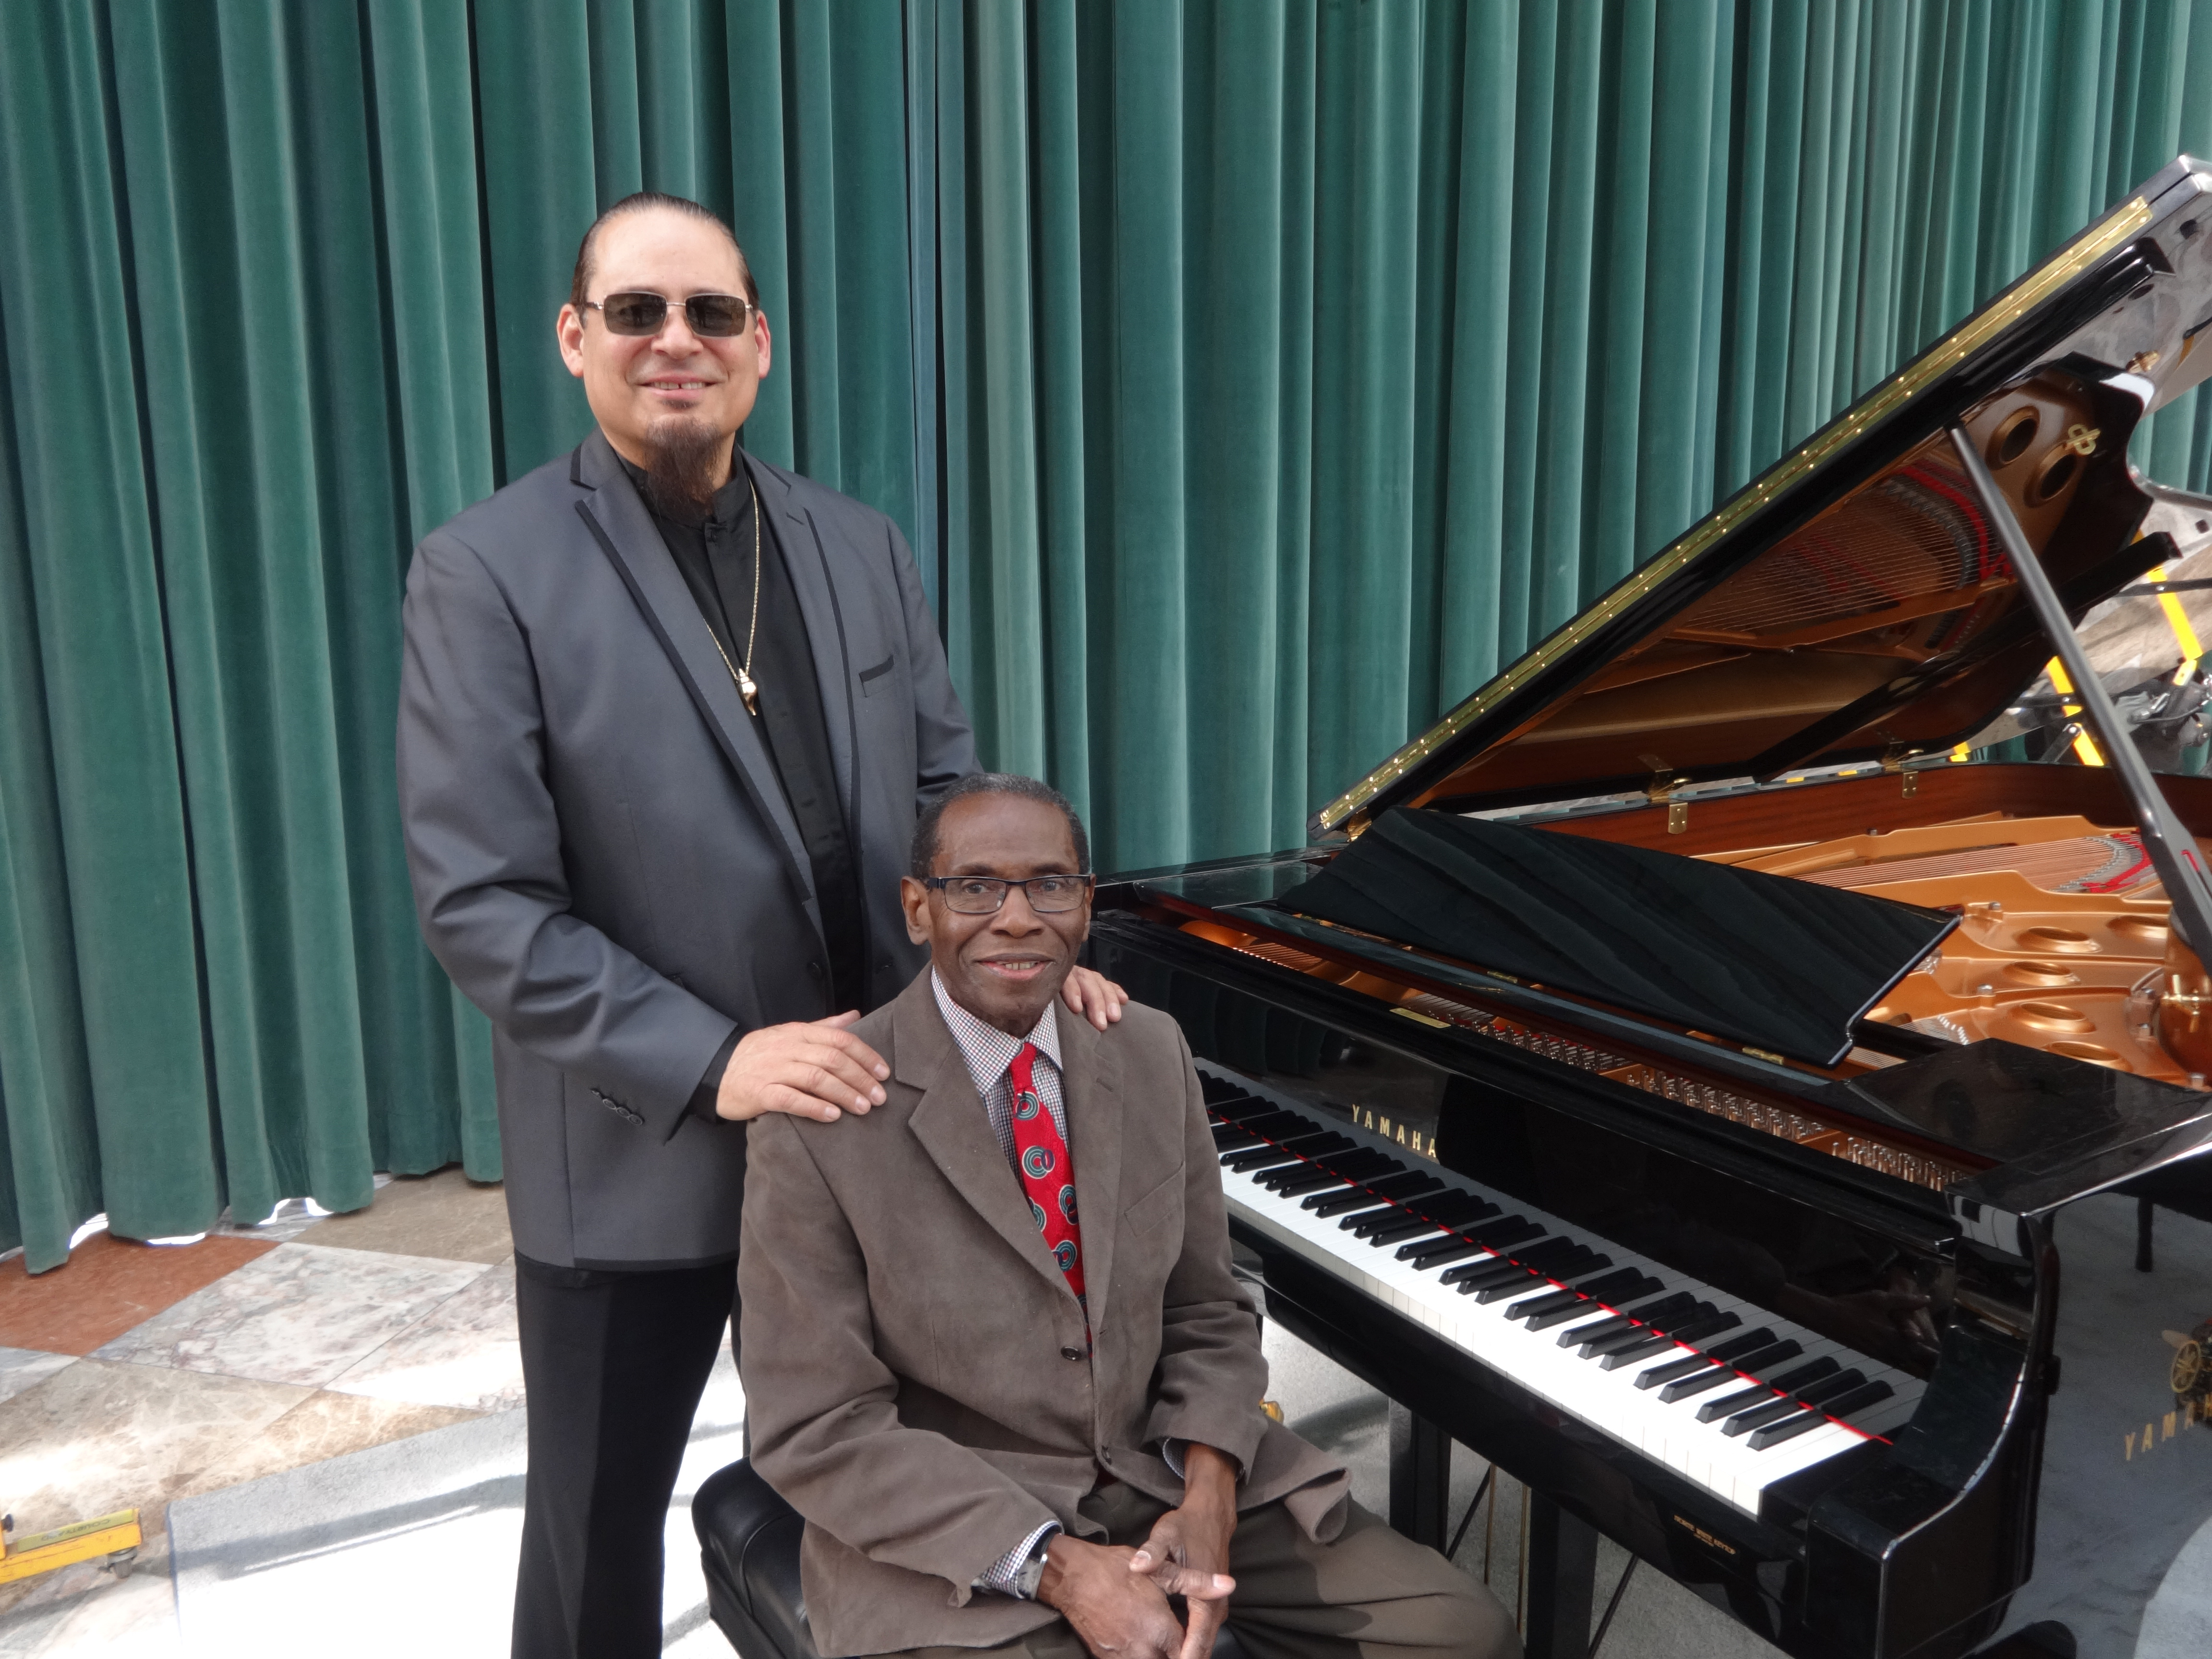 George Cables and Steve Turre